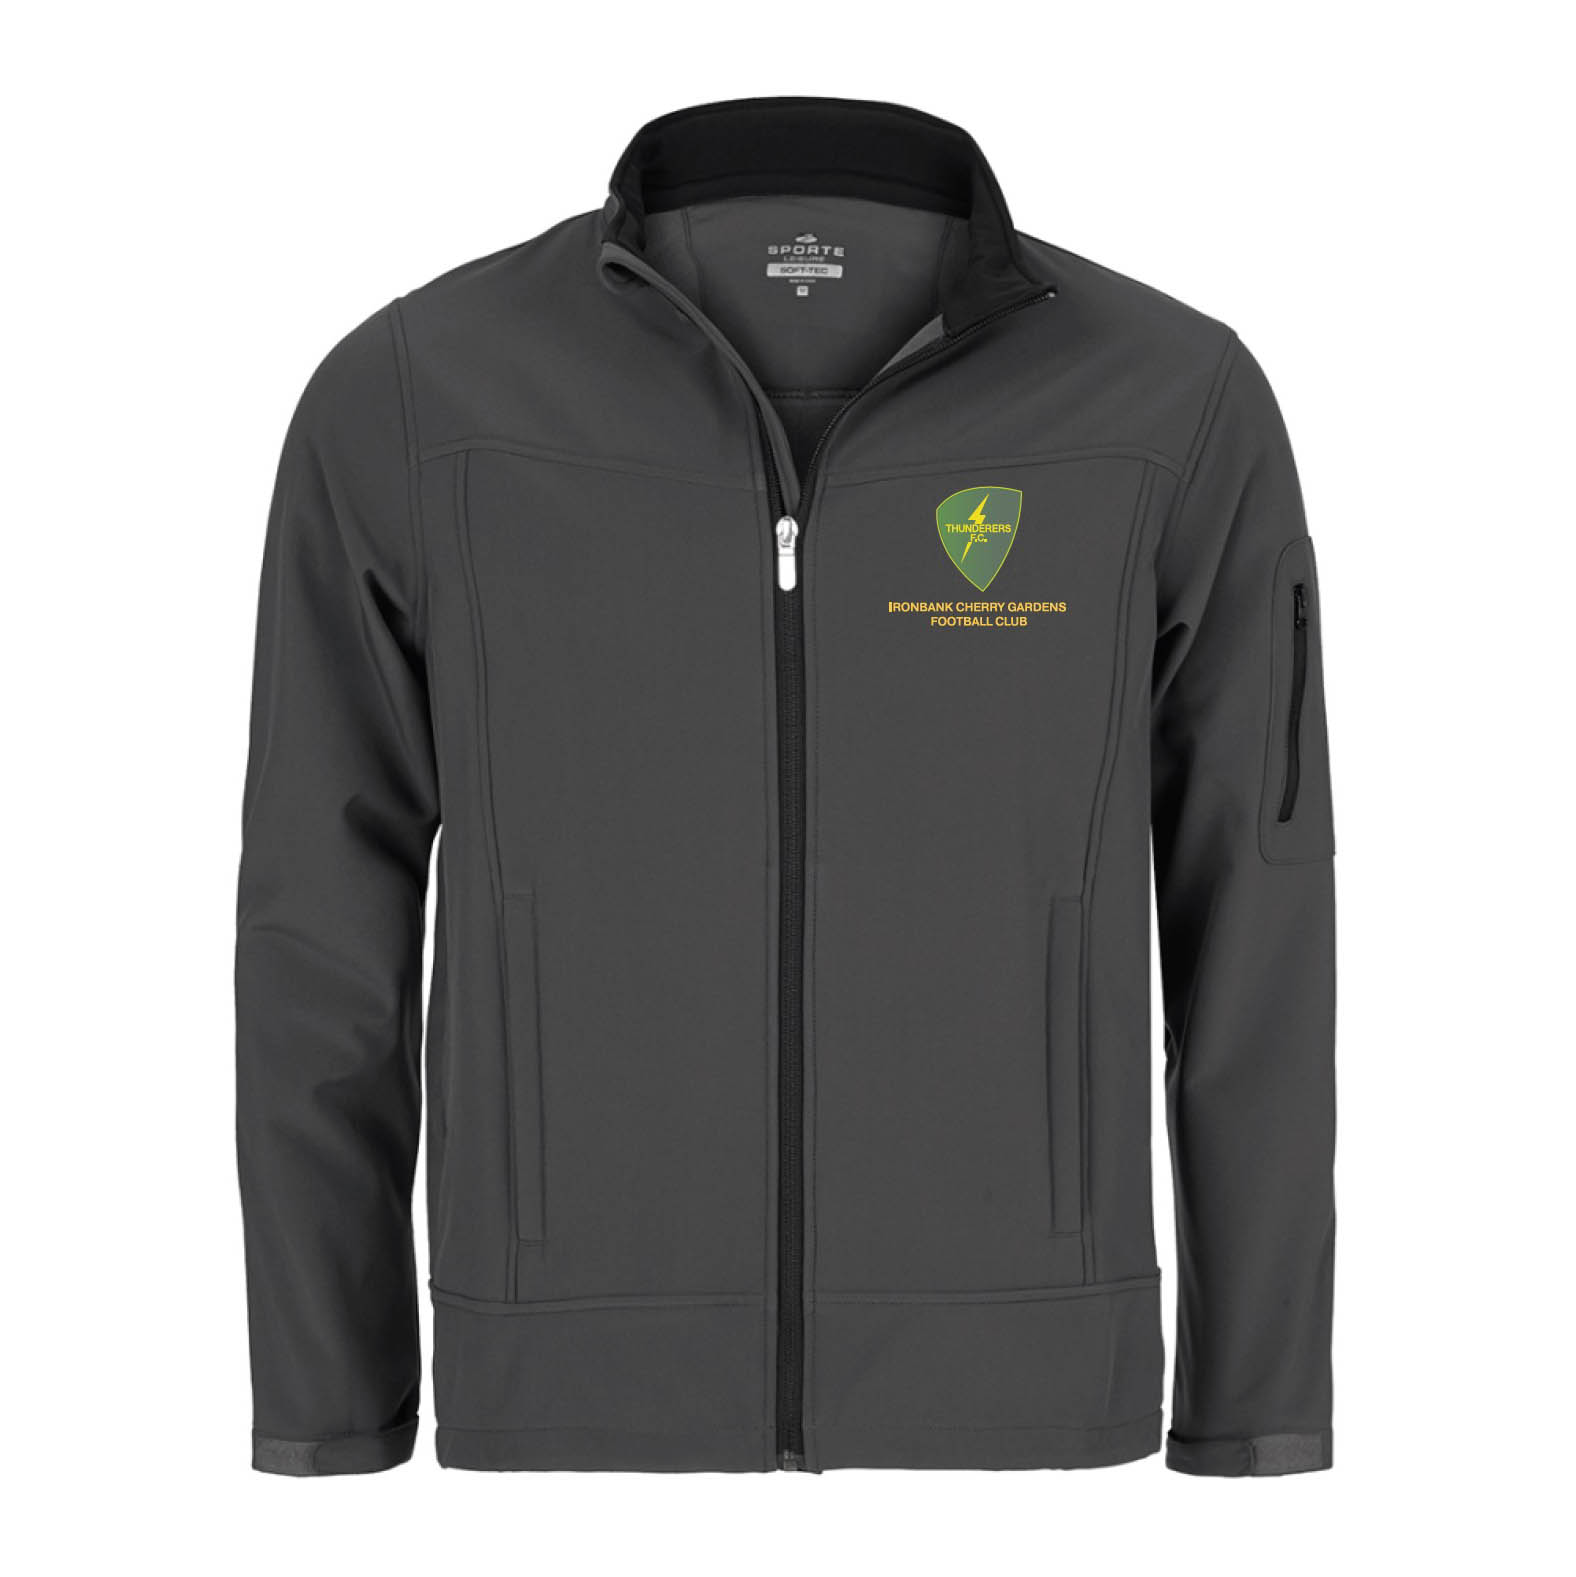 IBCG Softshell Jacket